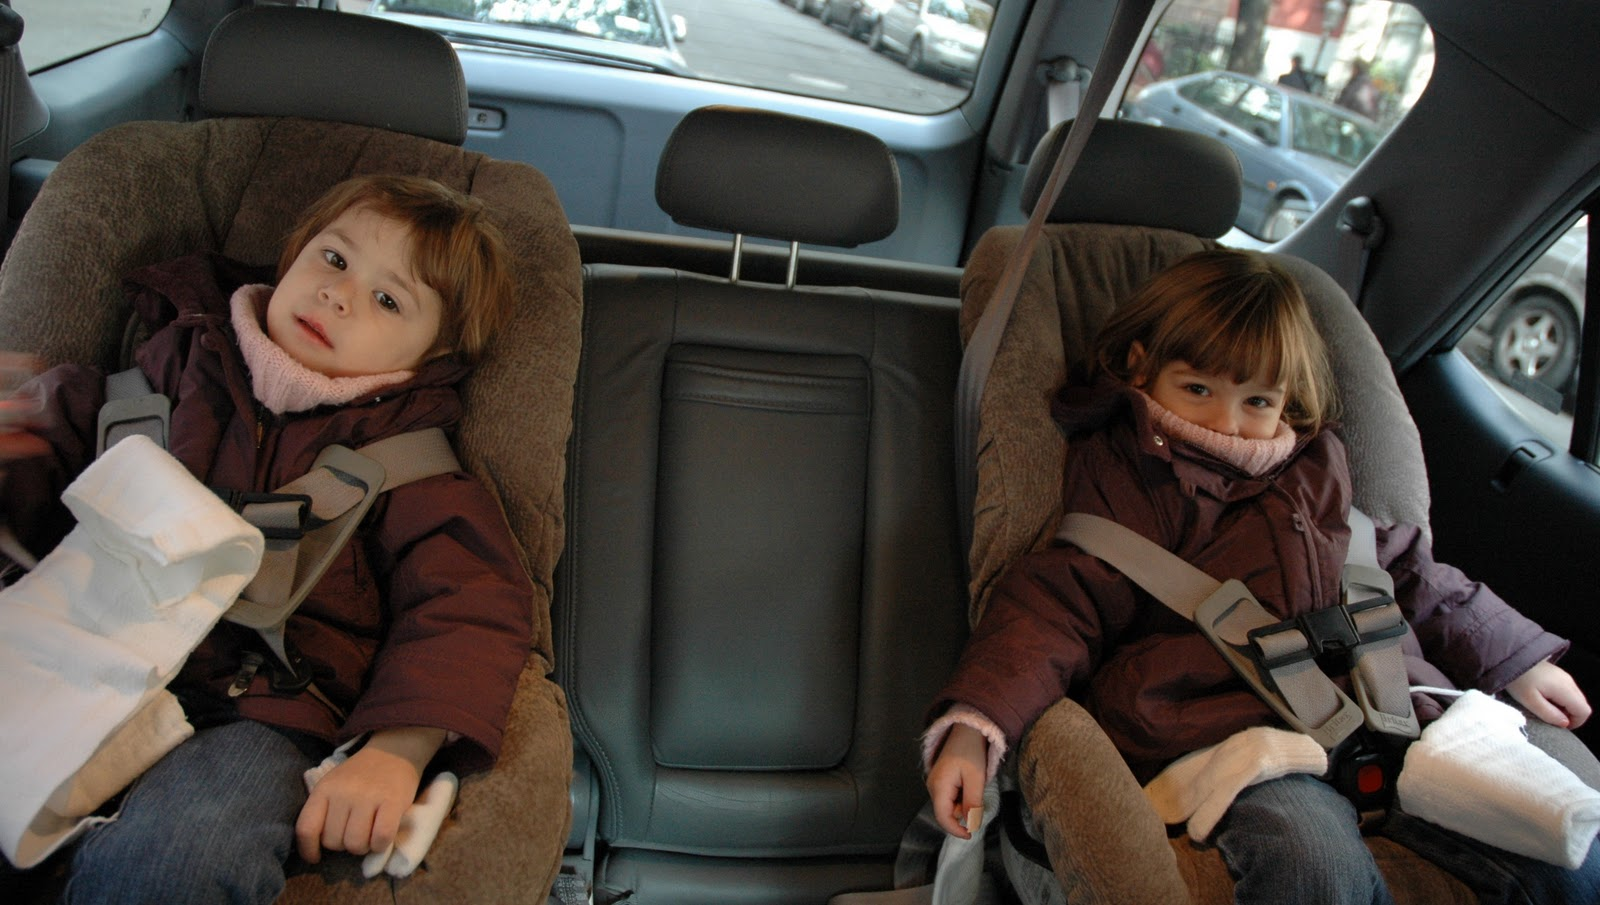 cc17173c6d97 The Car Seat Lady  (most) Coats   Car Seats are NOT a safe combo ...